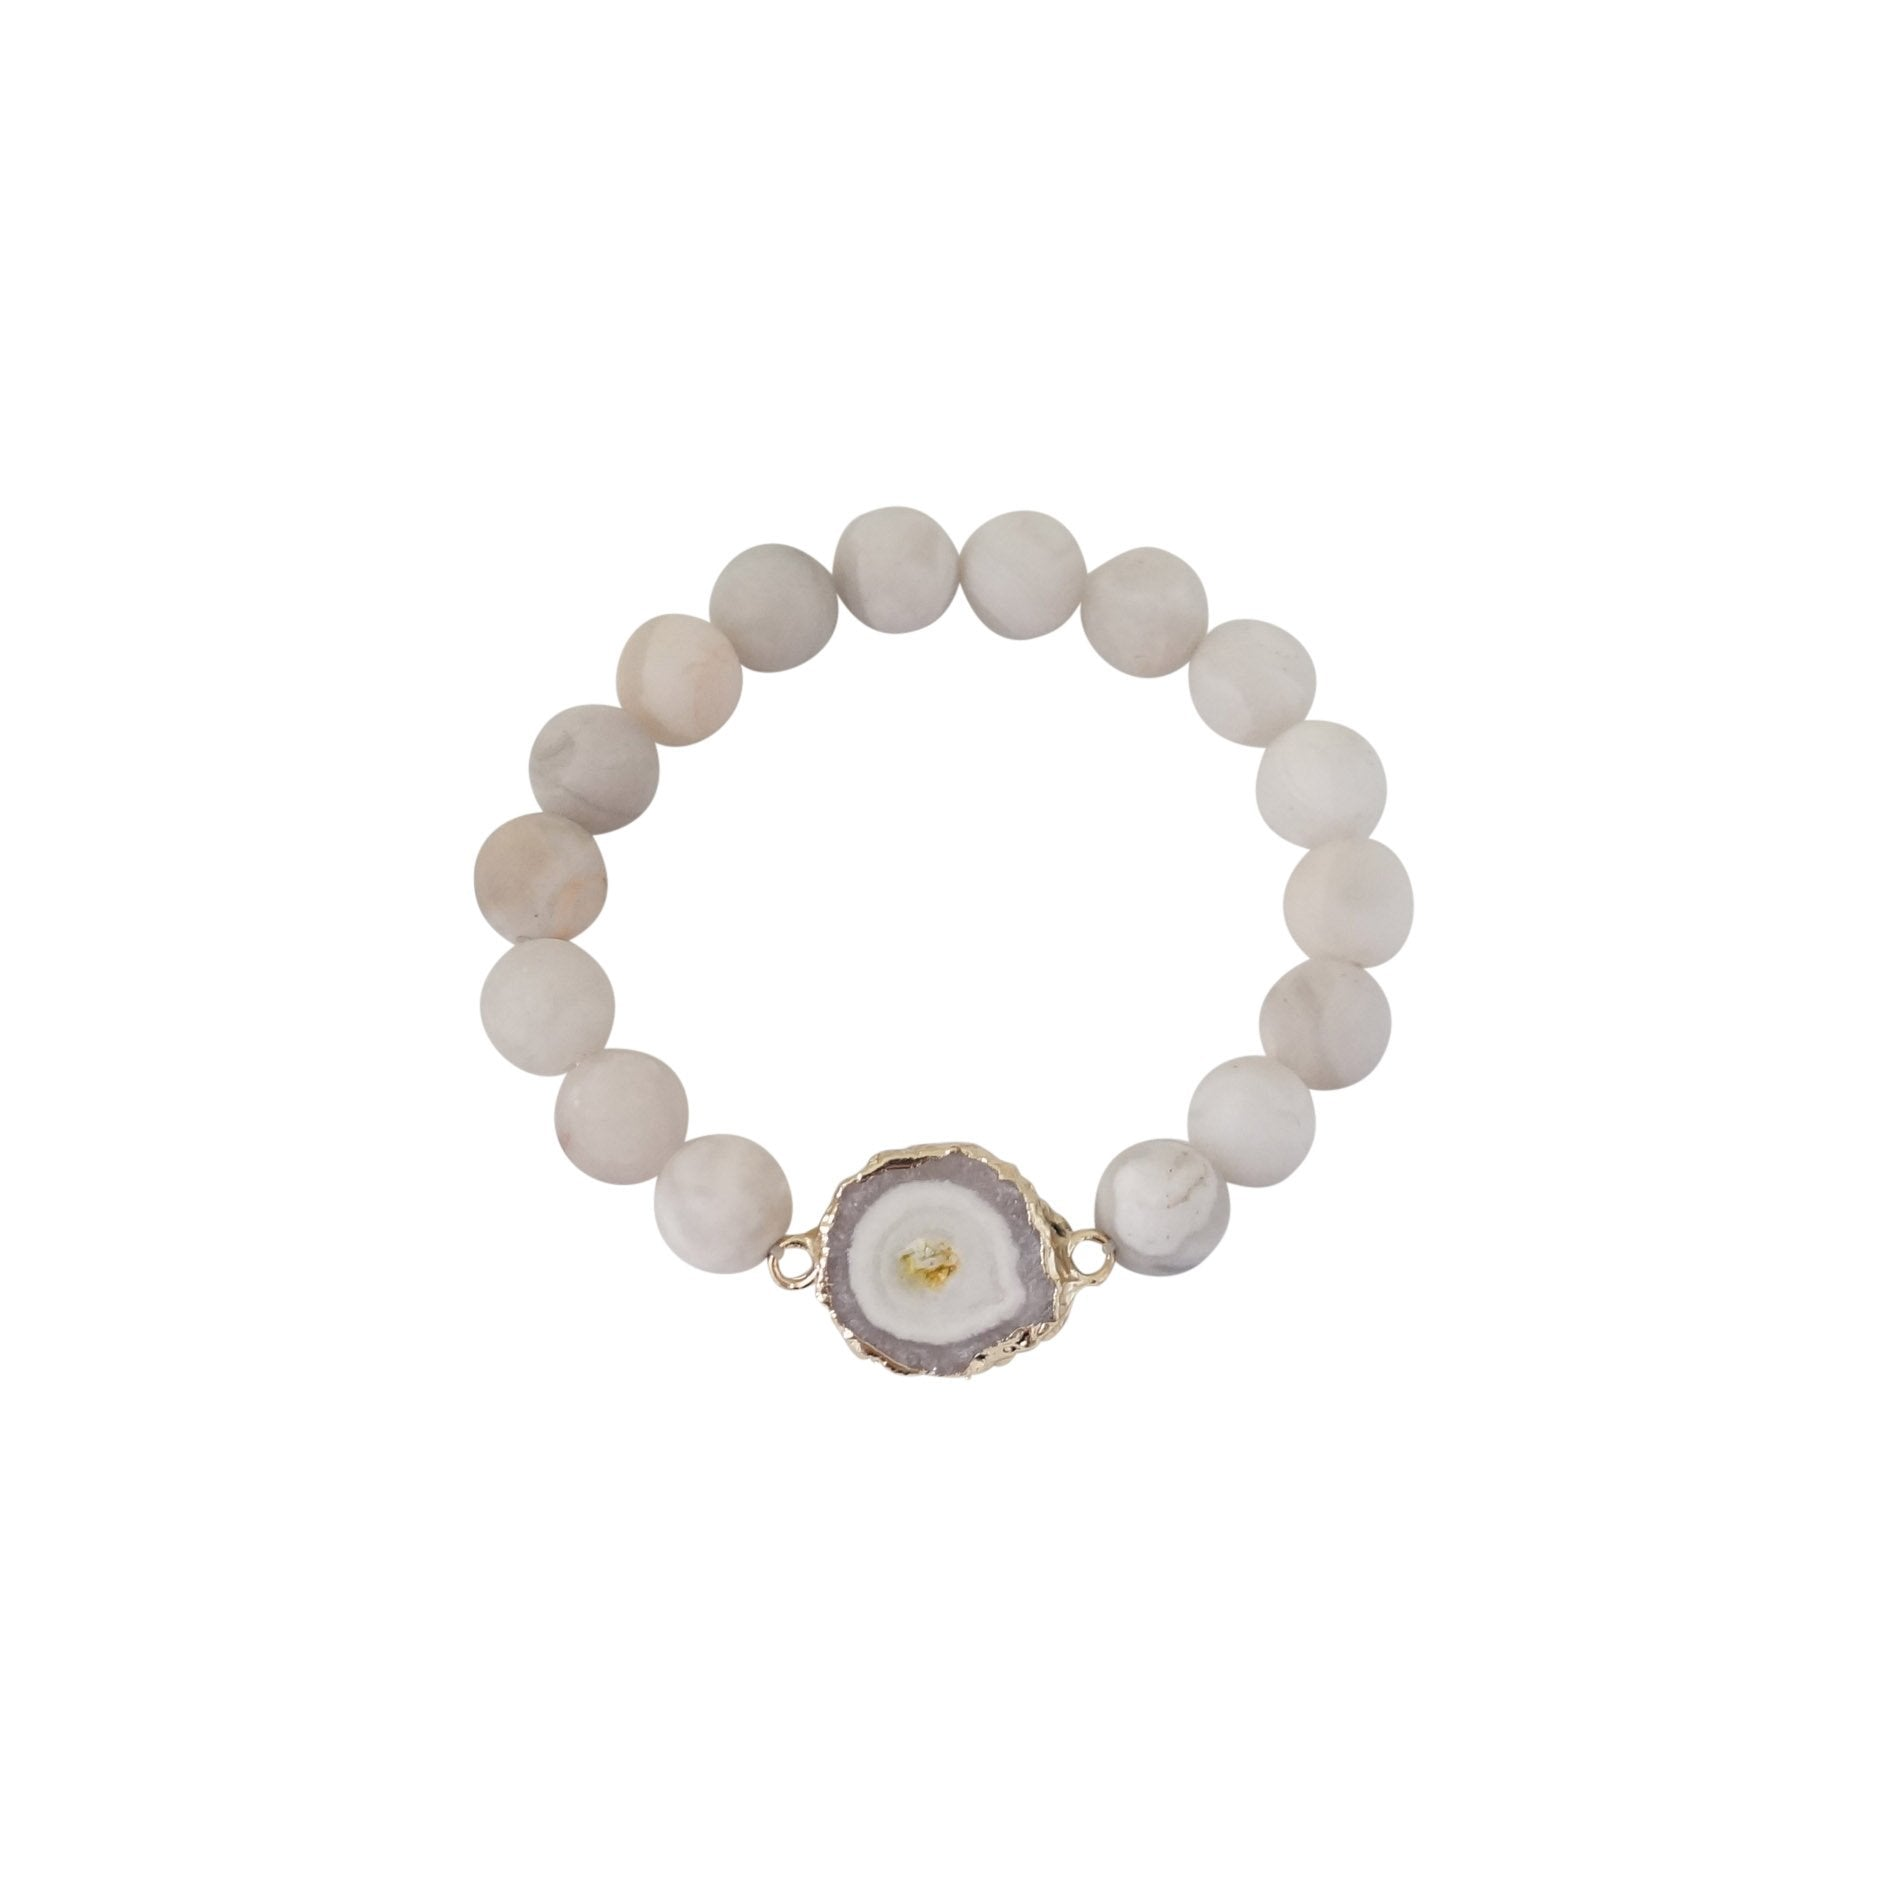 Peaceful Bracelet - Carolyn Hearn Designs